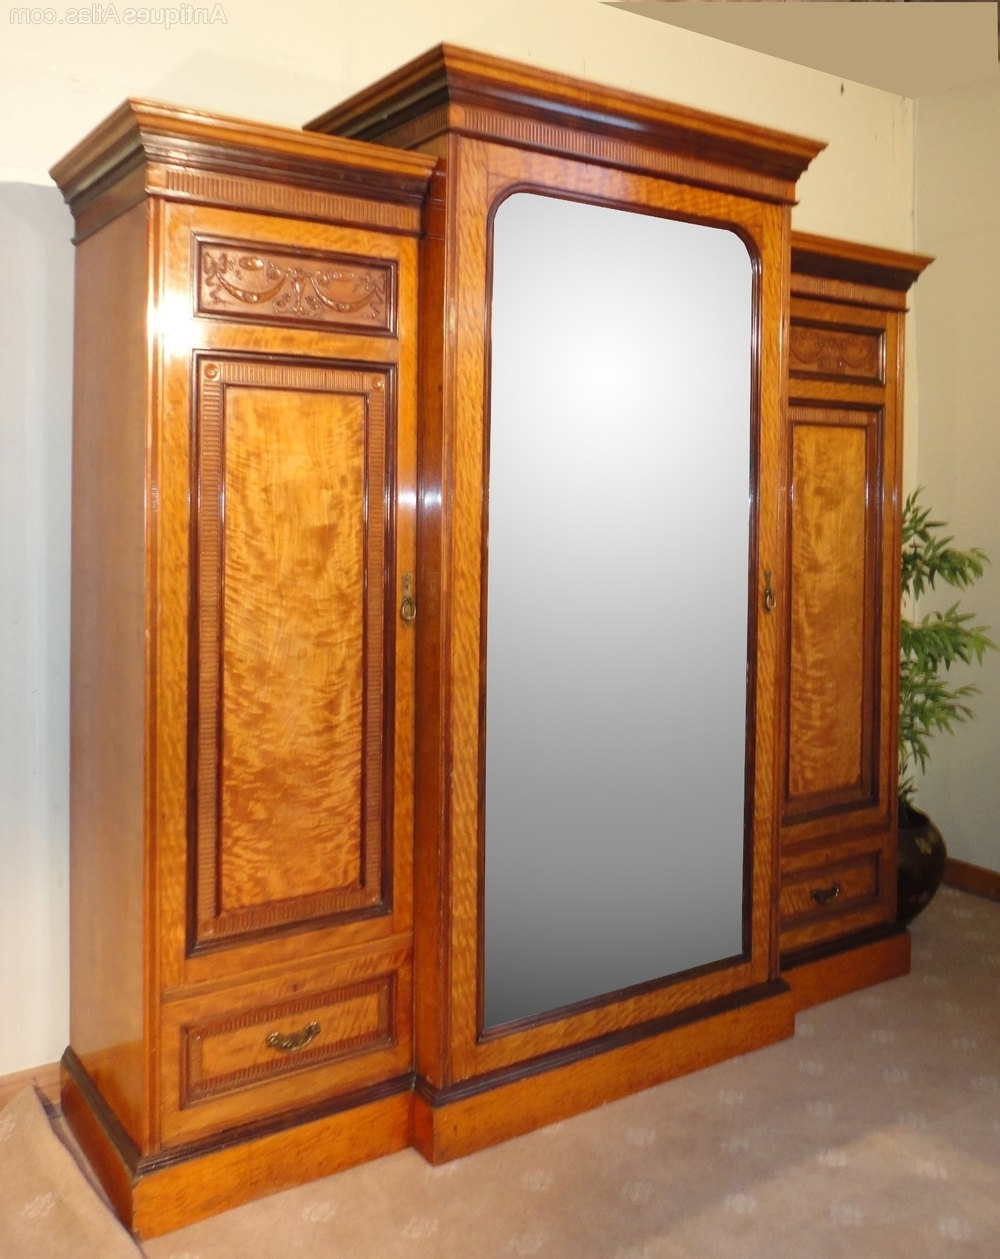 Well Known Victorian Satinwood & Rosewood Breakfront Wardrobe – Antiques Atlas Throughout Antique Breakfront Wardrobes (View 15 of 15)